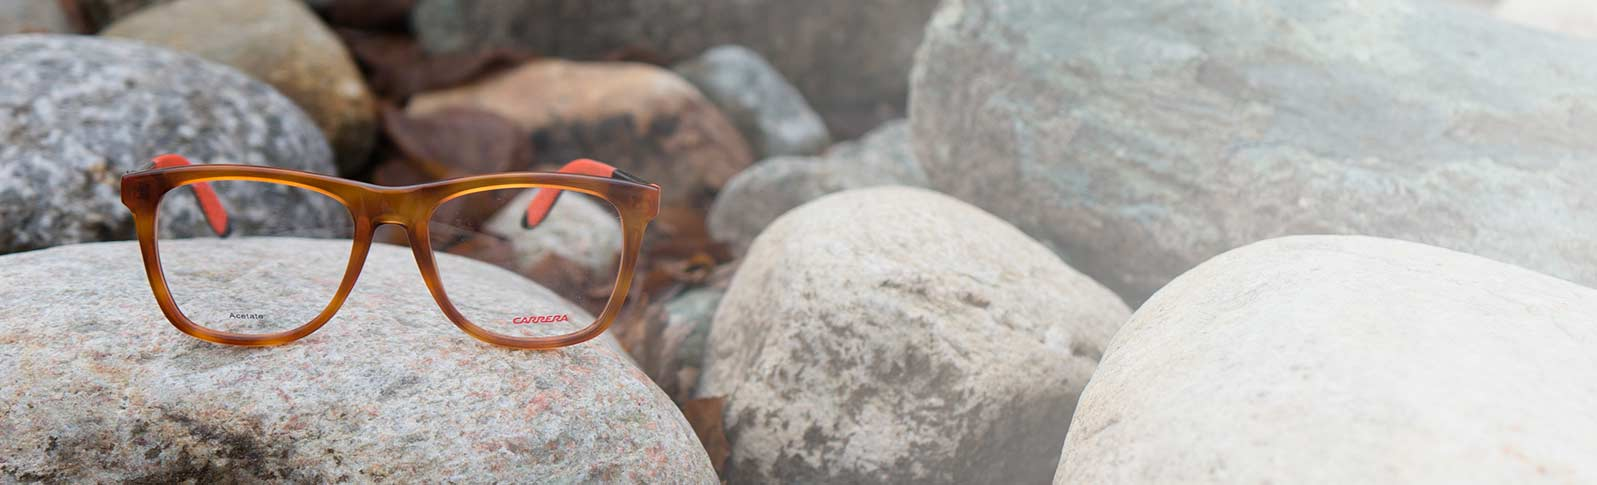 carrera glasses on a bed of gravel and stones